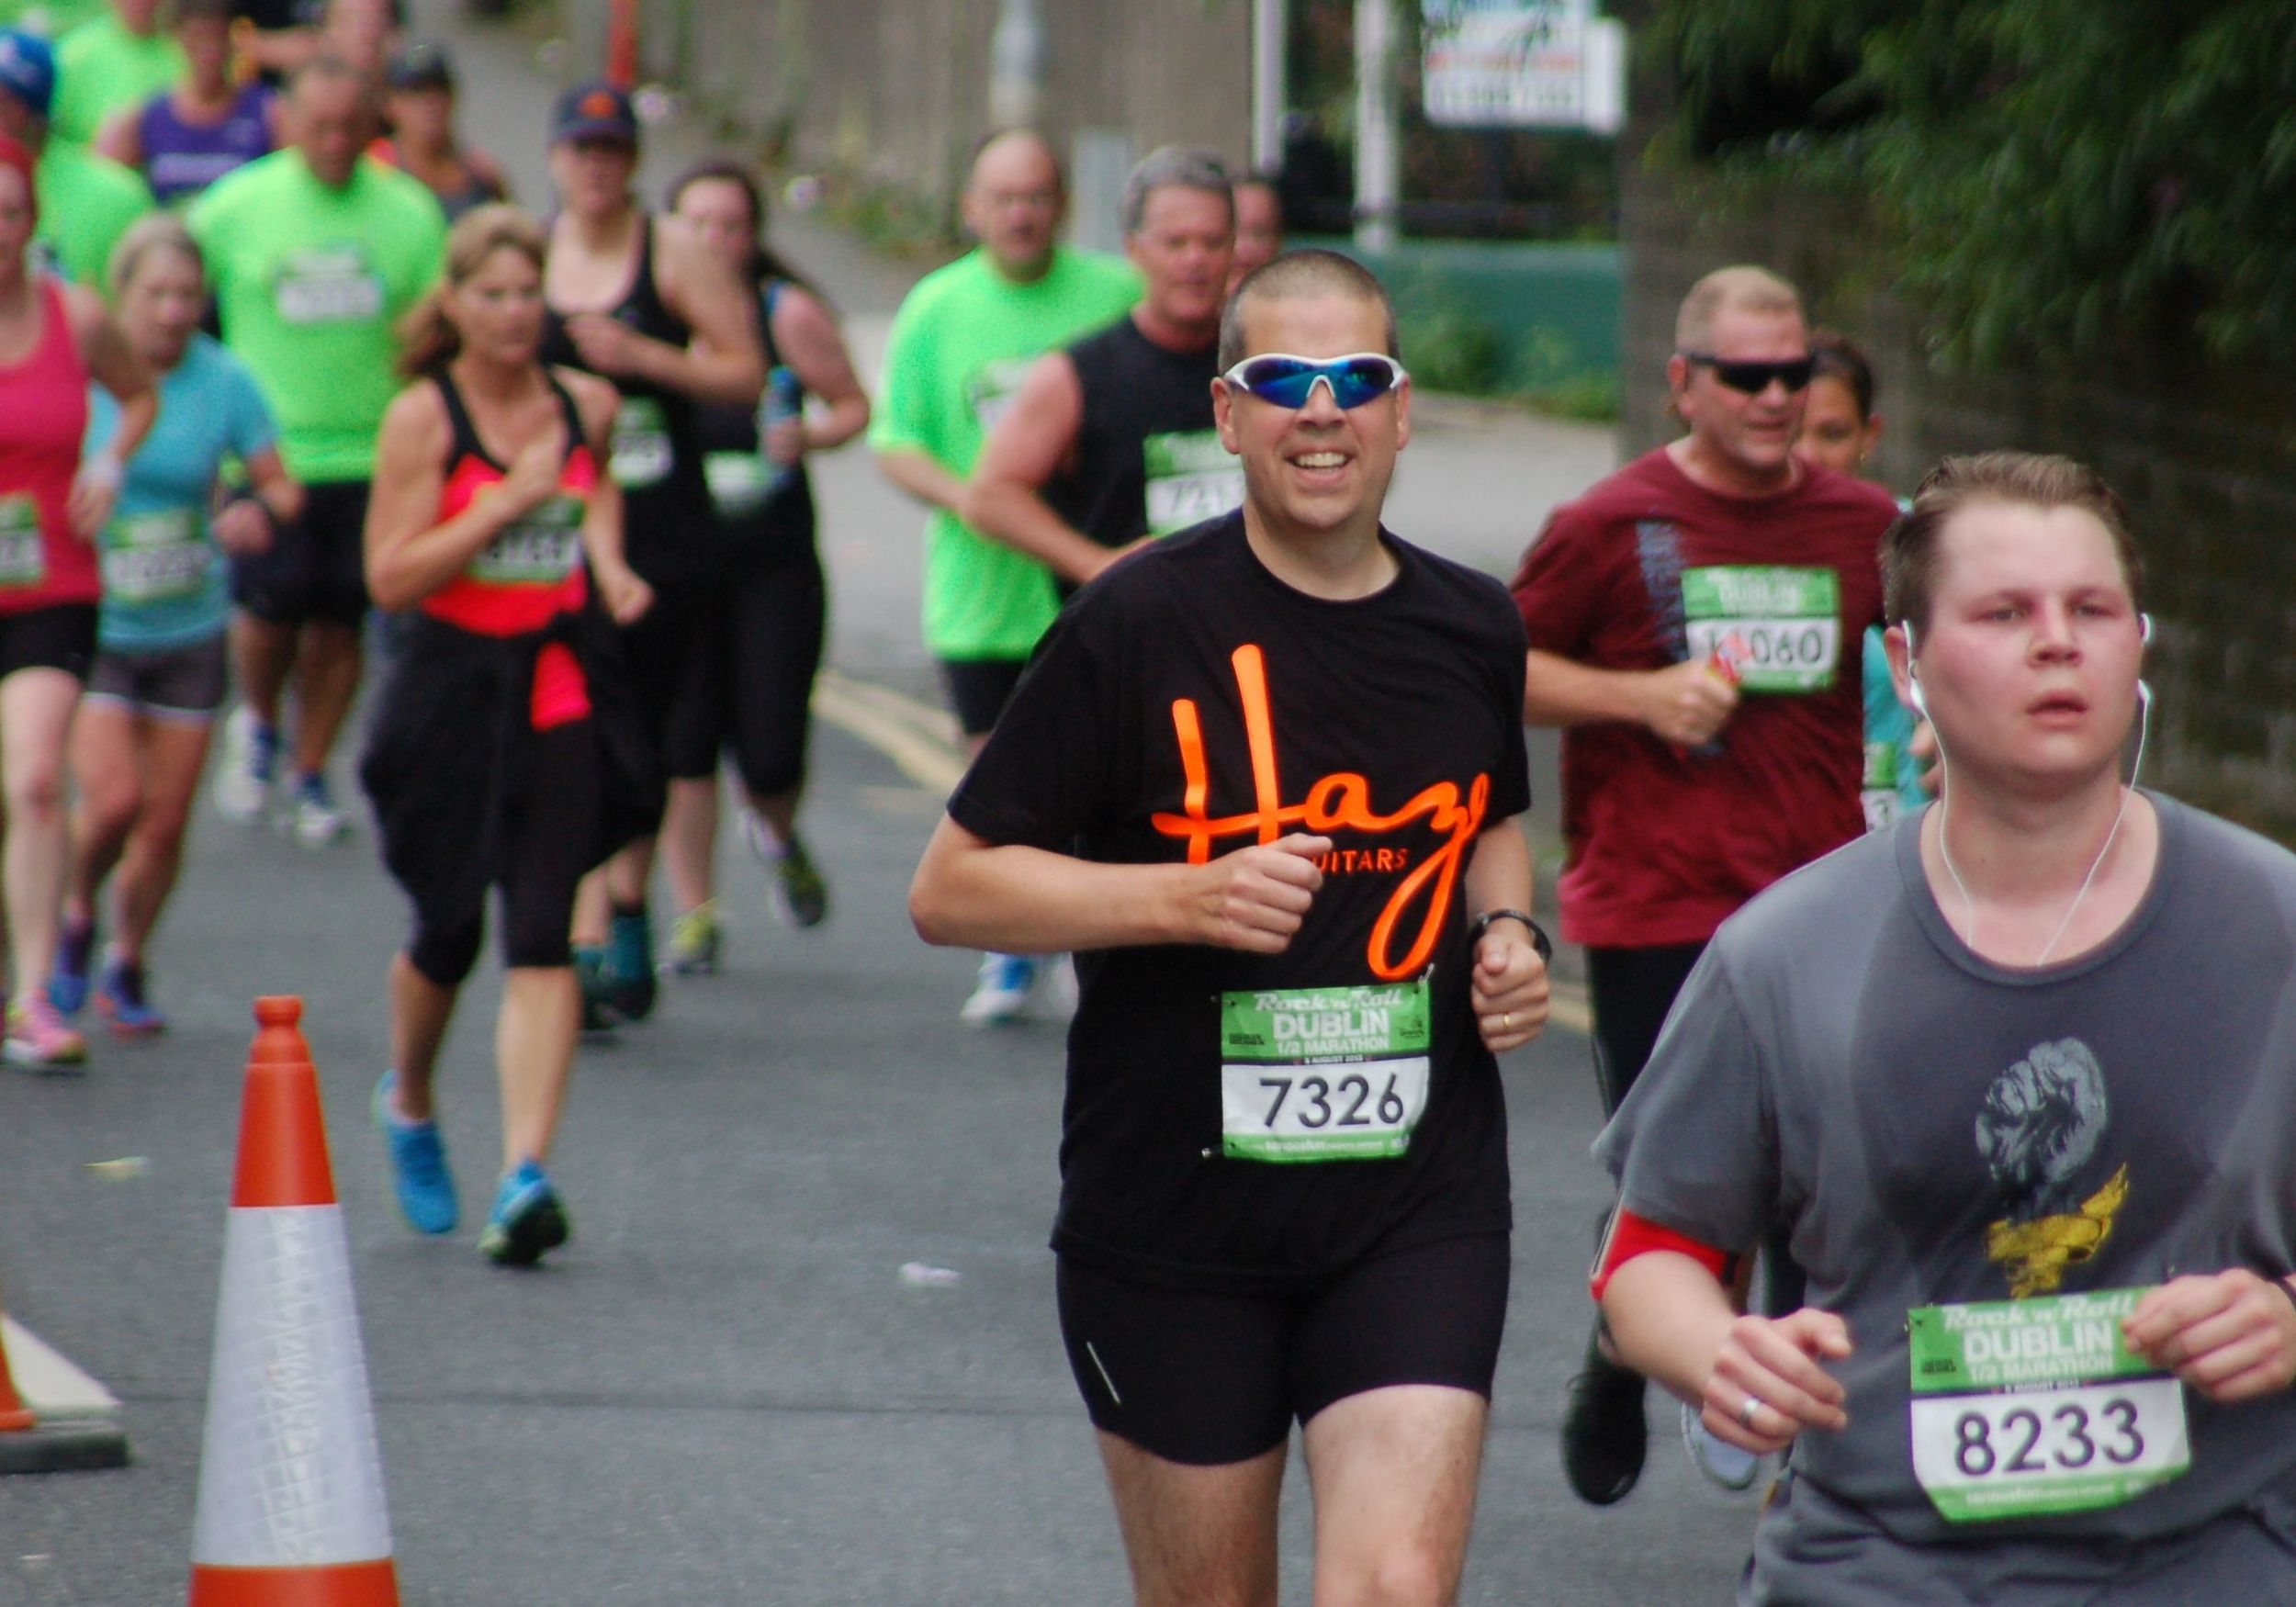 Niall looking strong in the Rock 'n' Roll Half Marathon